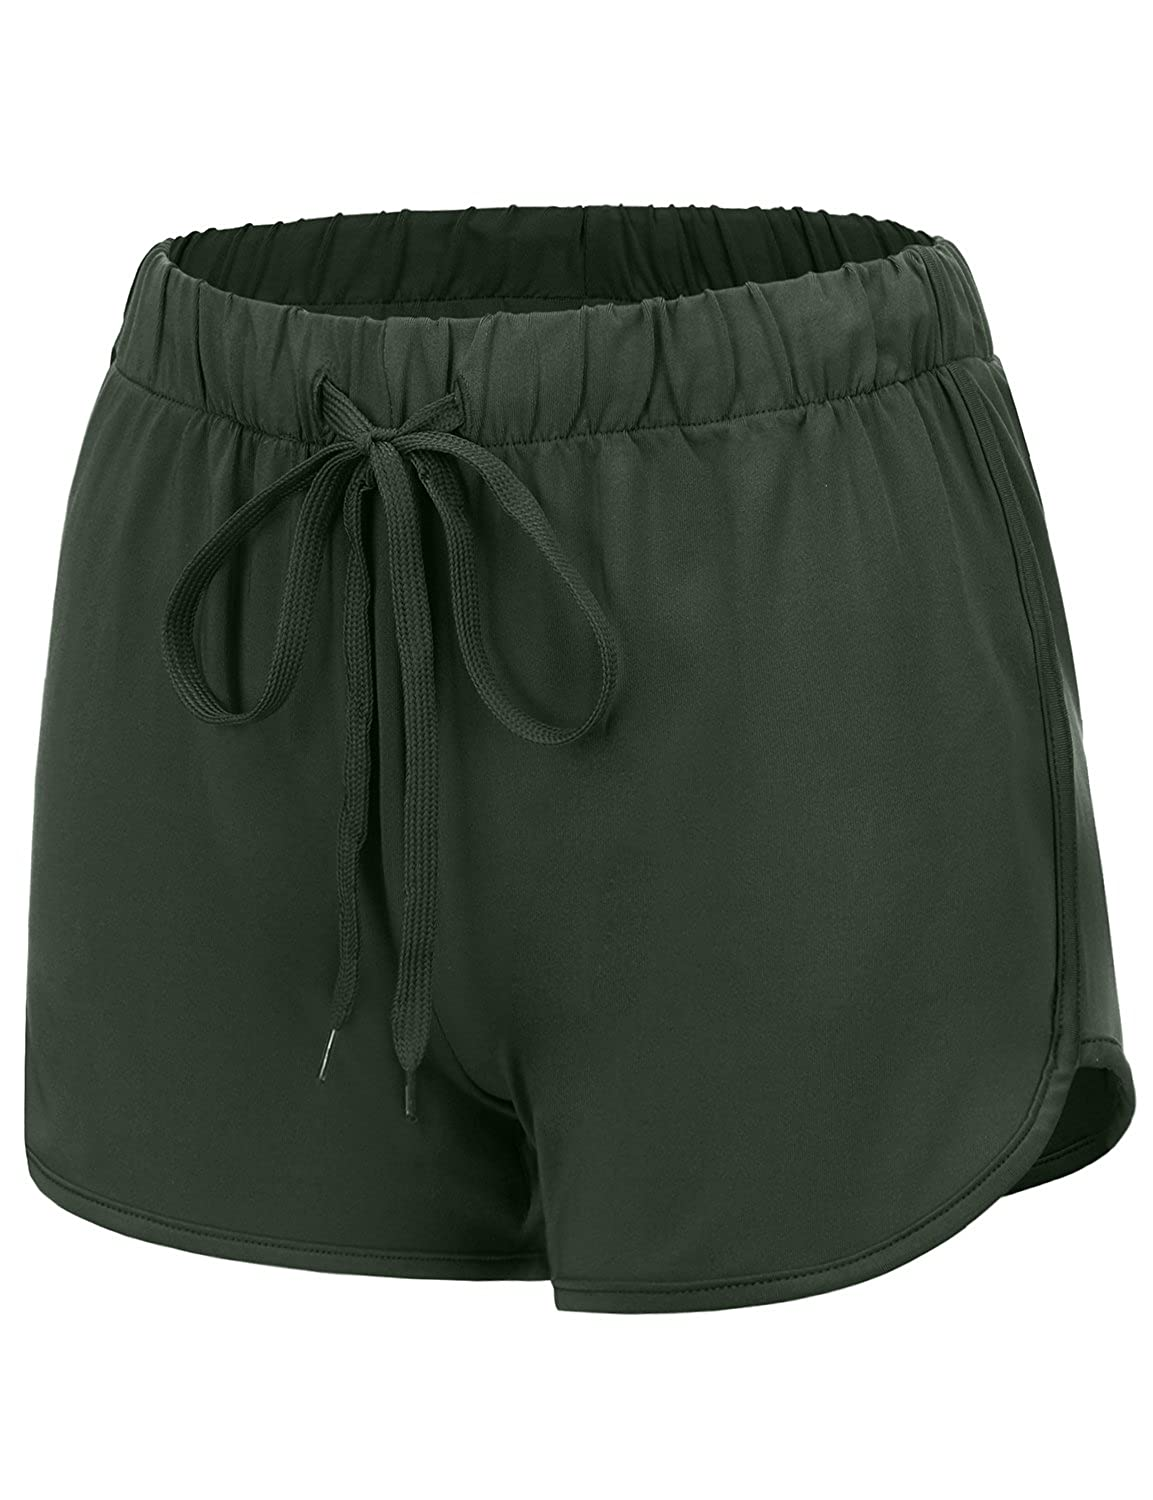 17401_olive Regna X Women's Summer Dolphin Running Shorts (Solid & color Block)